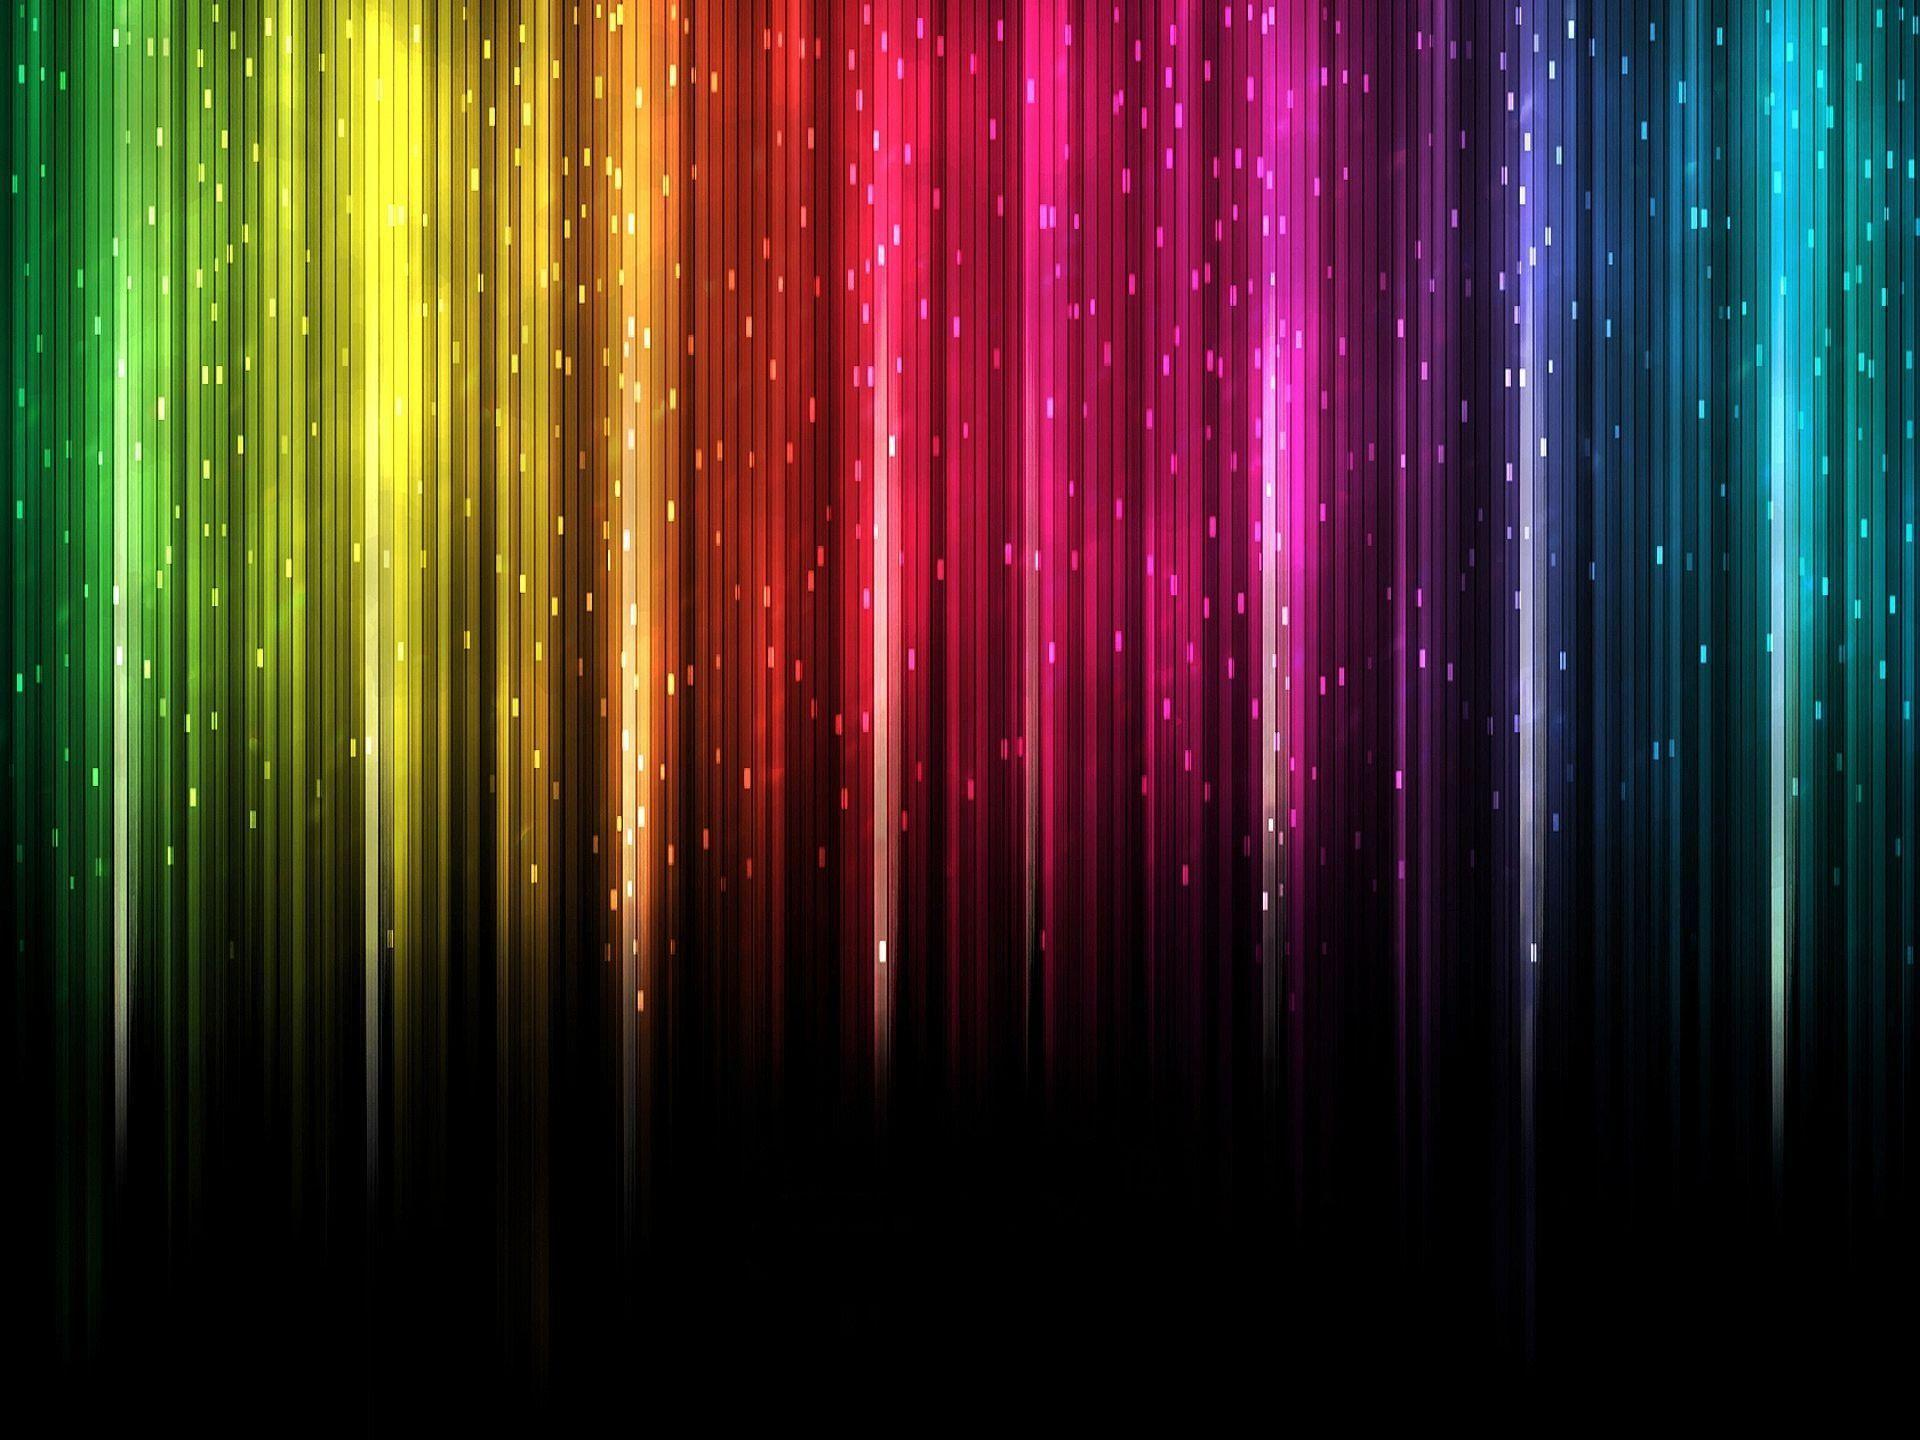 Bright Color Background Wallpaper 87610 Wallpapersfree Wallpapers